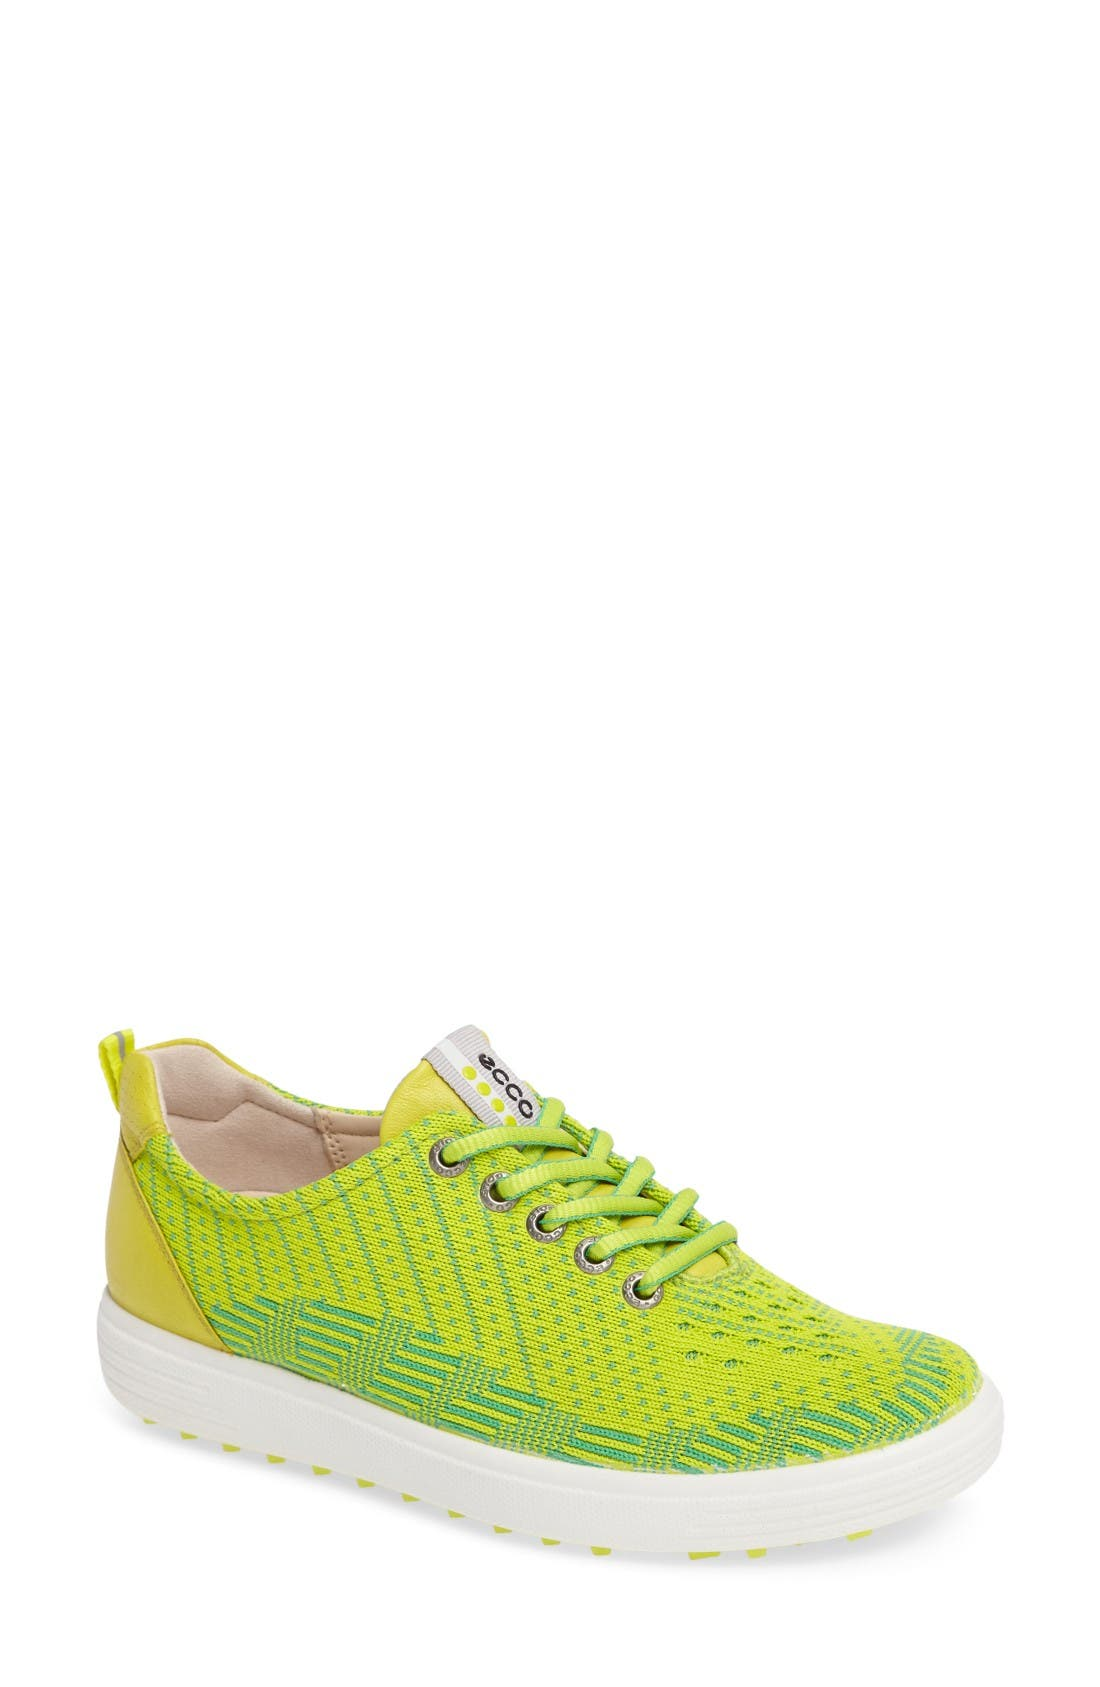 Alternate Image 1 Selected - ECCO Casual Hybrid Knit Golf Sneaker (Women)